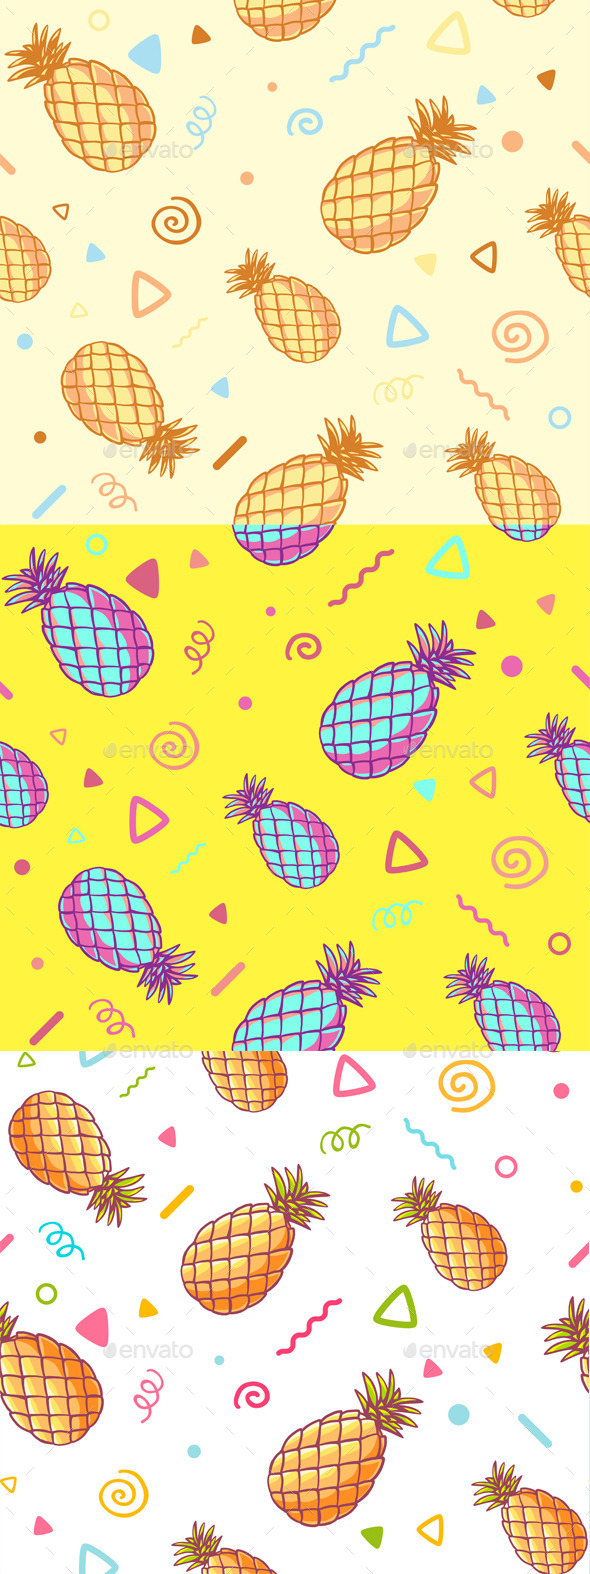 Three Fashionable Patterns with Pineapples - Patterns Decorative